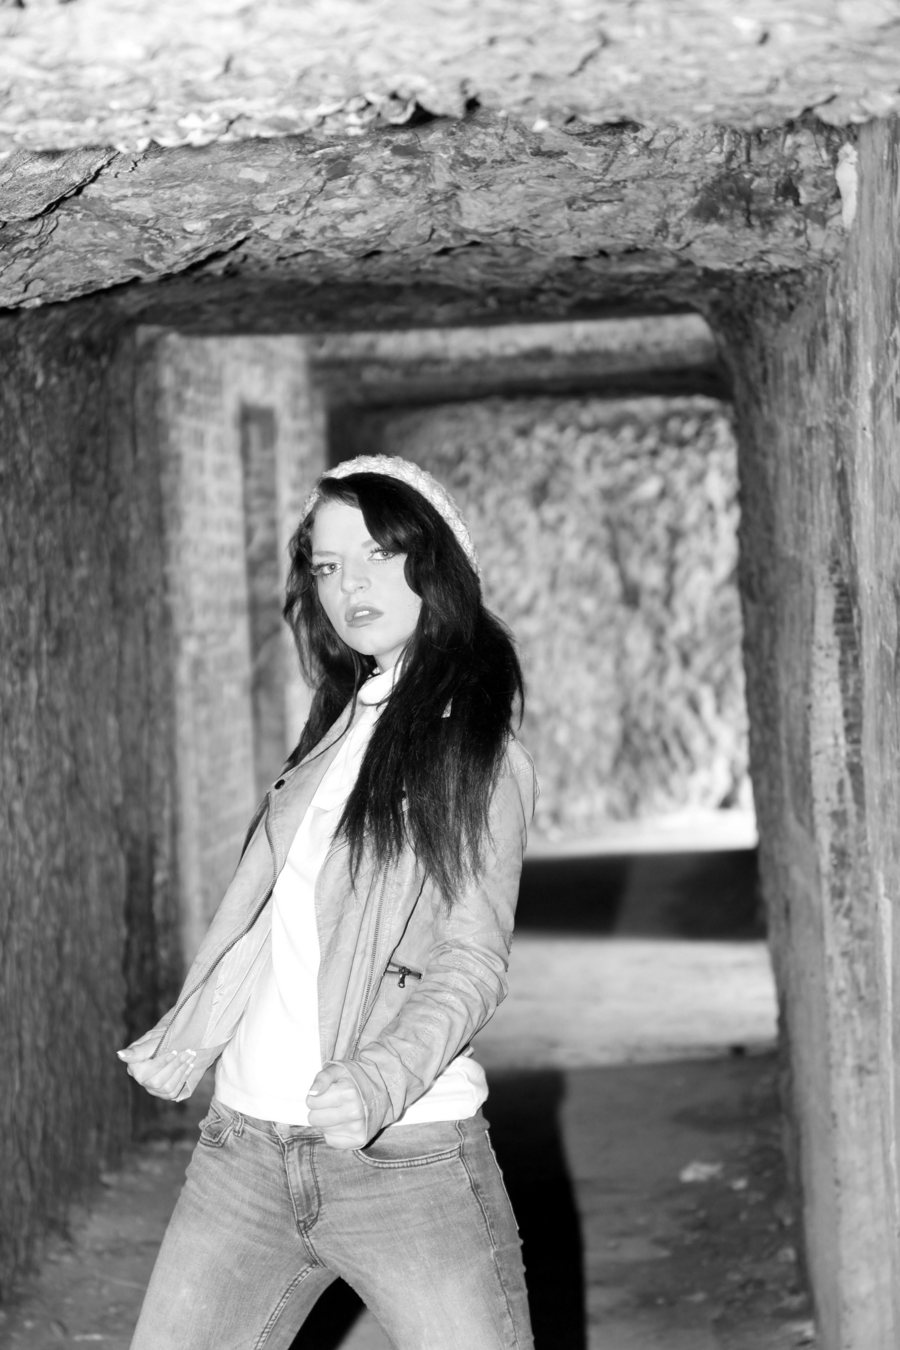 Danni in the alley / Photography by dunk / Uploaded 26th February 2013 @ 09:46 AM